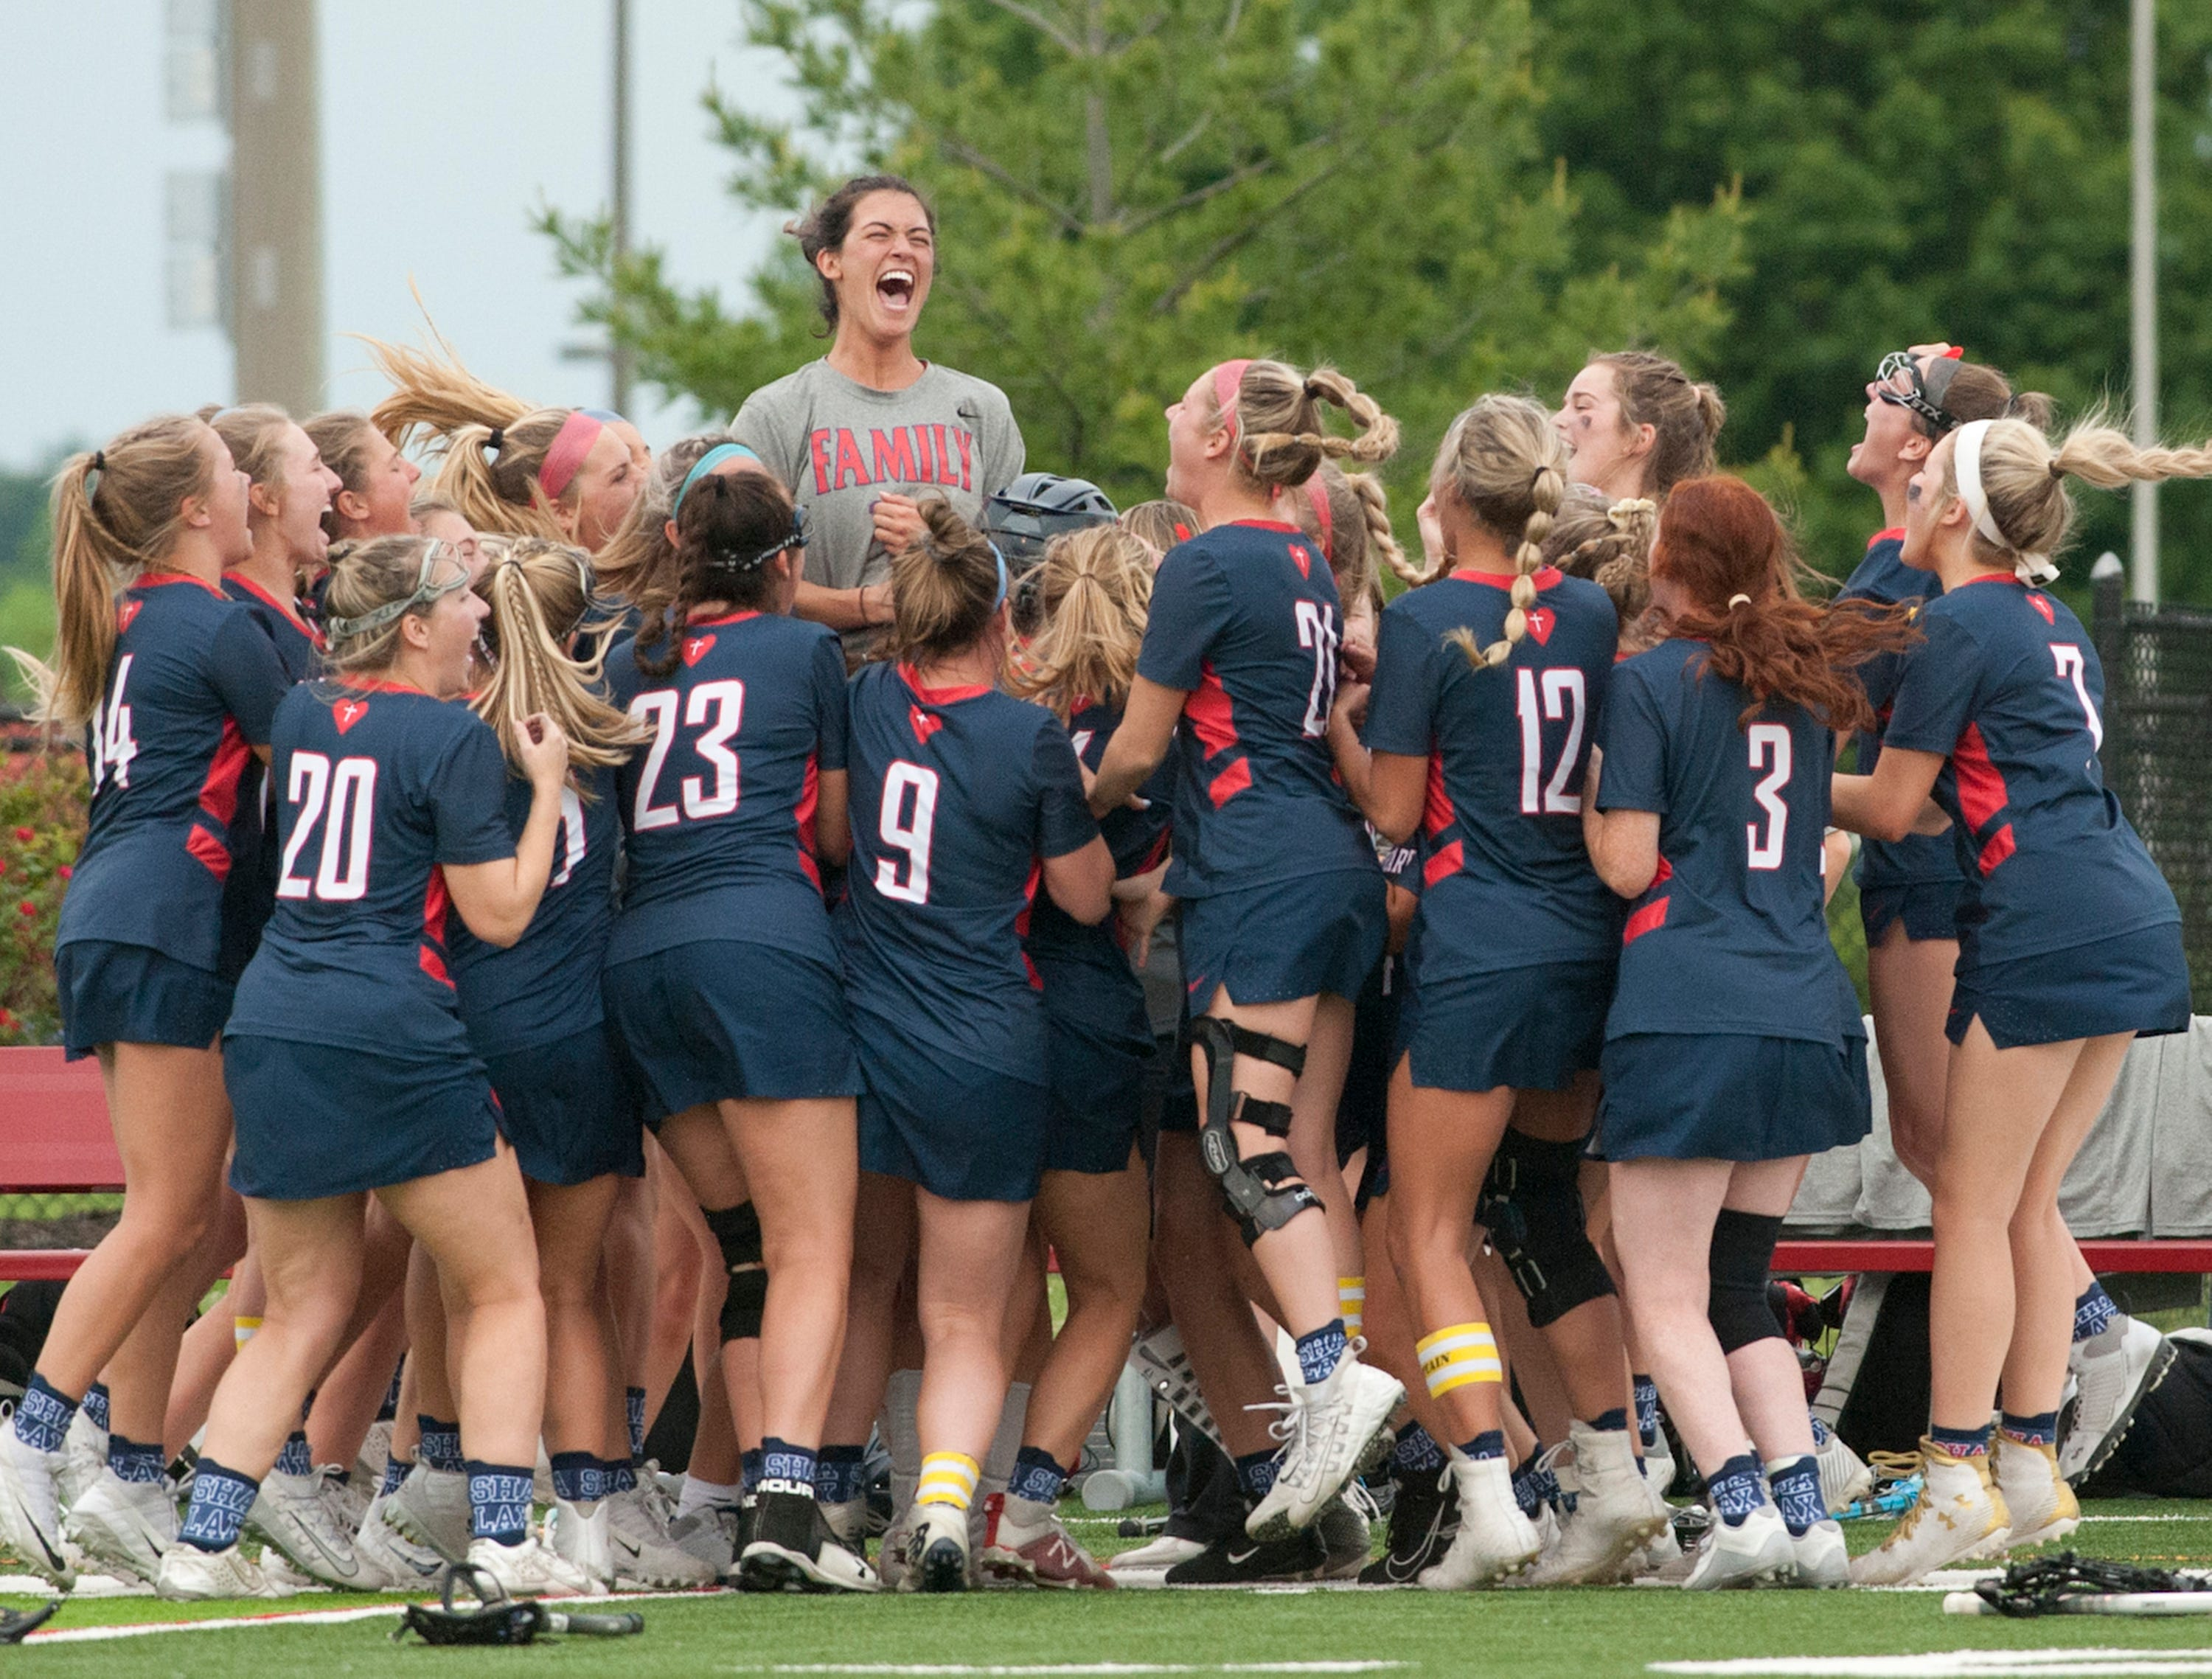 Kentucky girls state lacrosse championship: Sacred Heart and Eastern face off